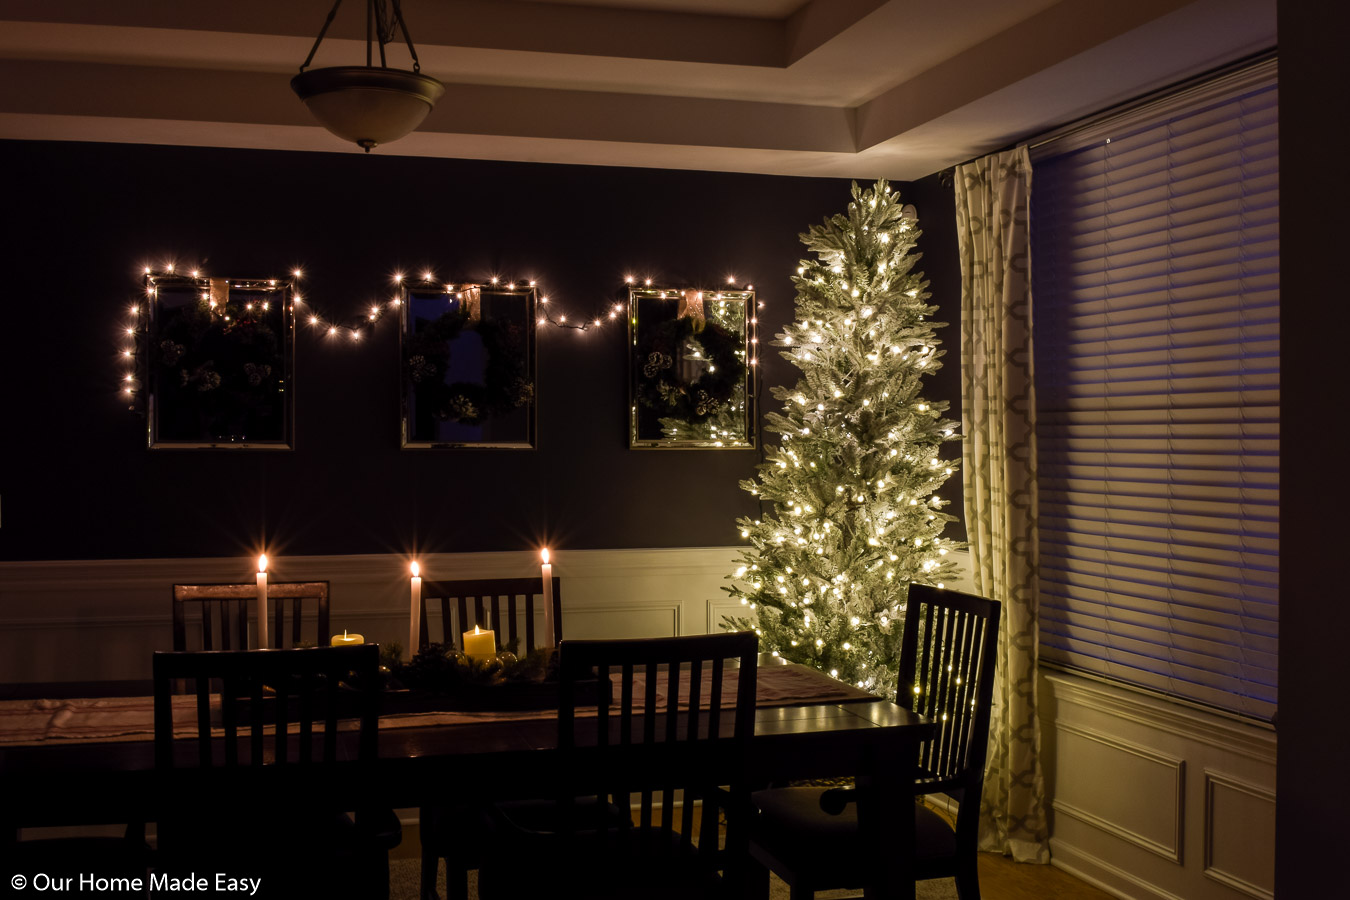 Our dining room Christmas tree is simple and bright, with clean white lights and no ornaments